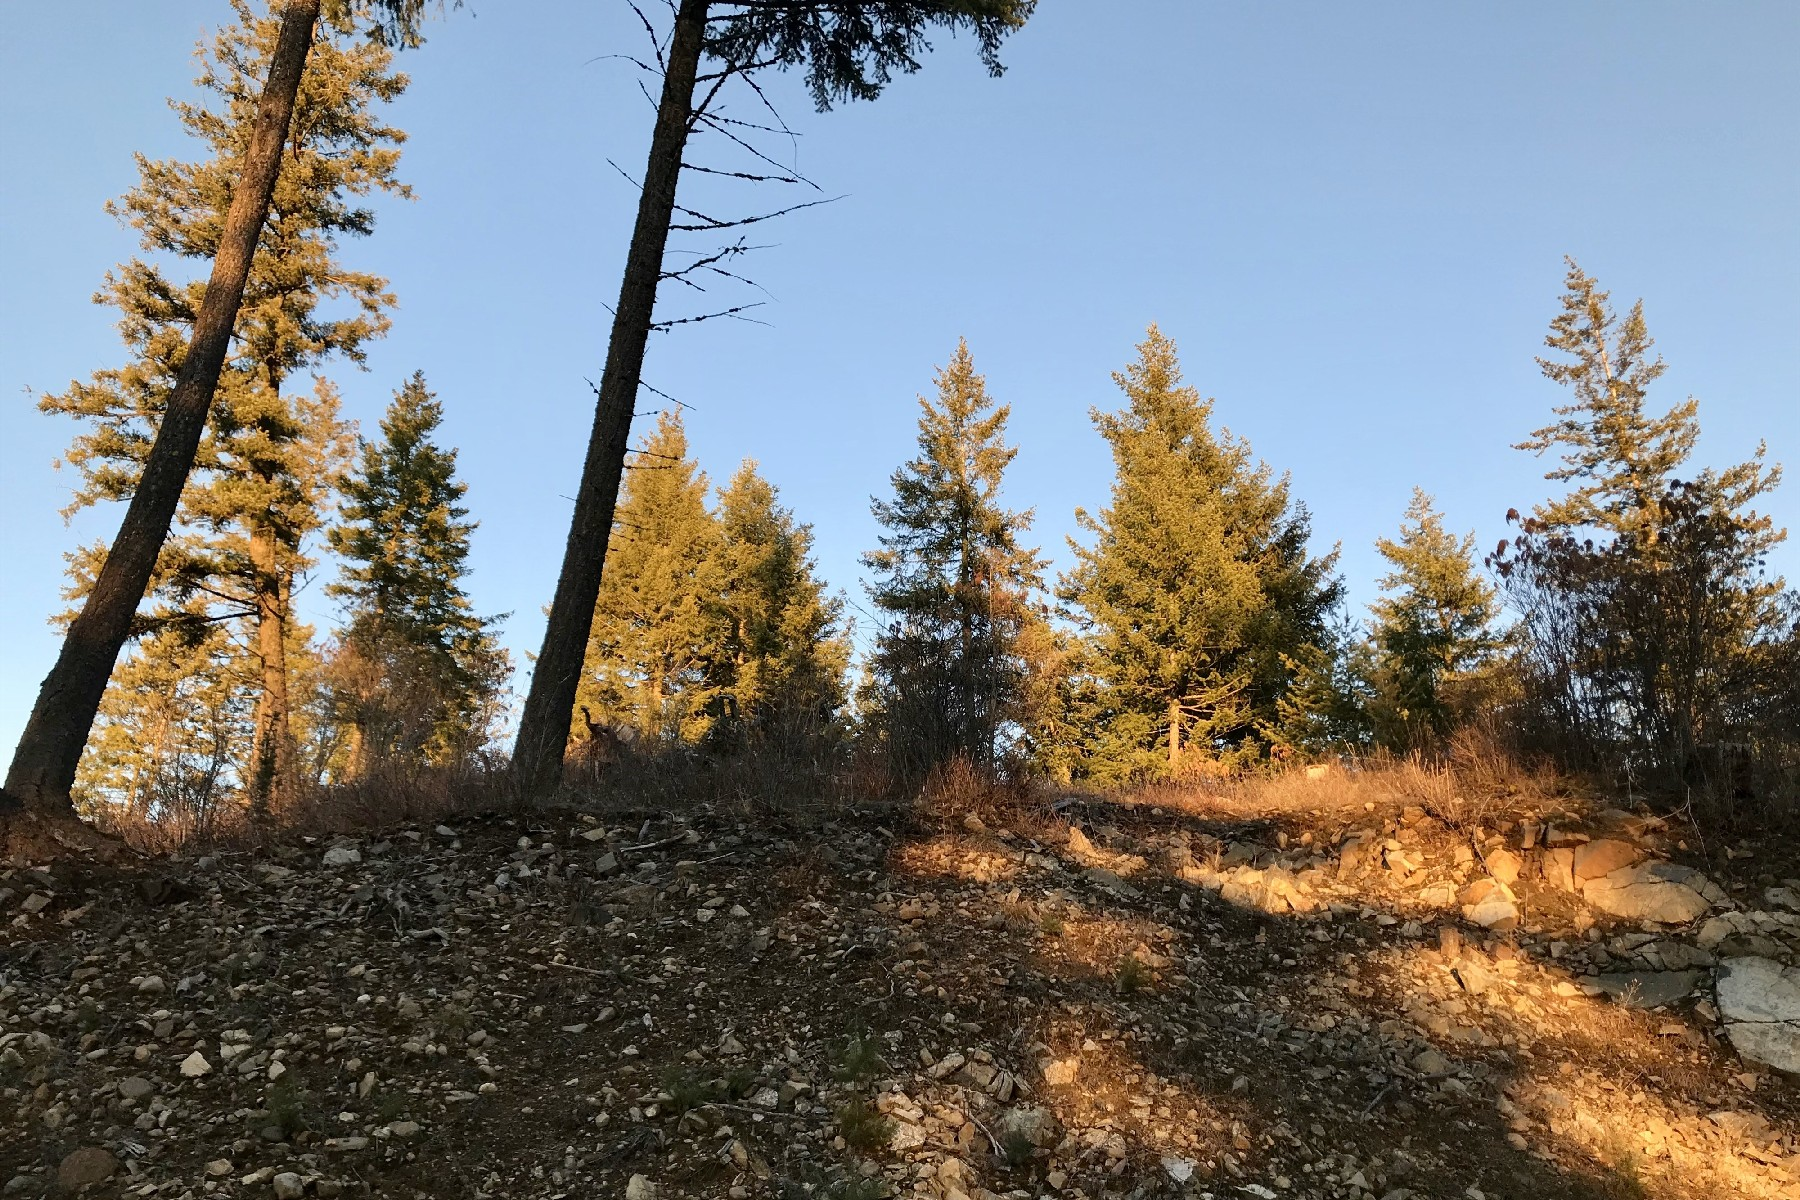 Land for Sale at The Idaho Club D-12 Whitecloud Drive Sandpoint, Idaho 83864 United States